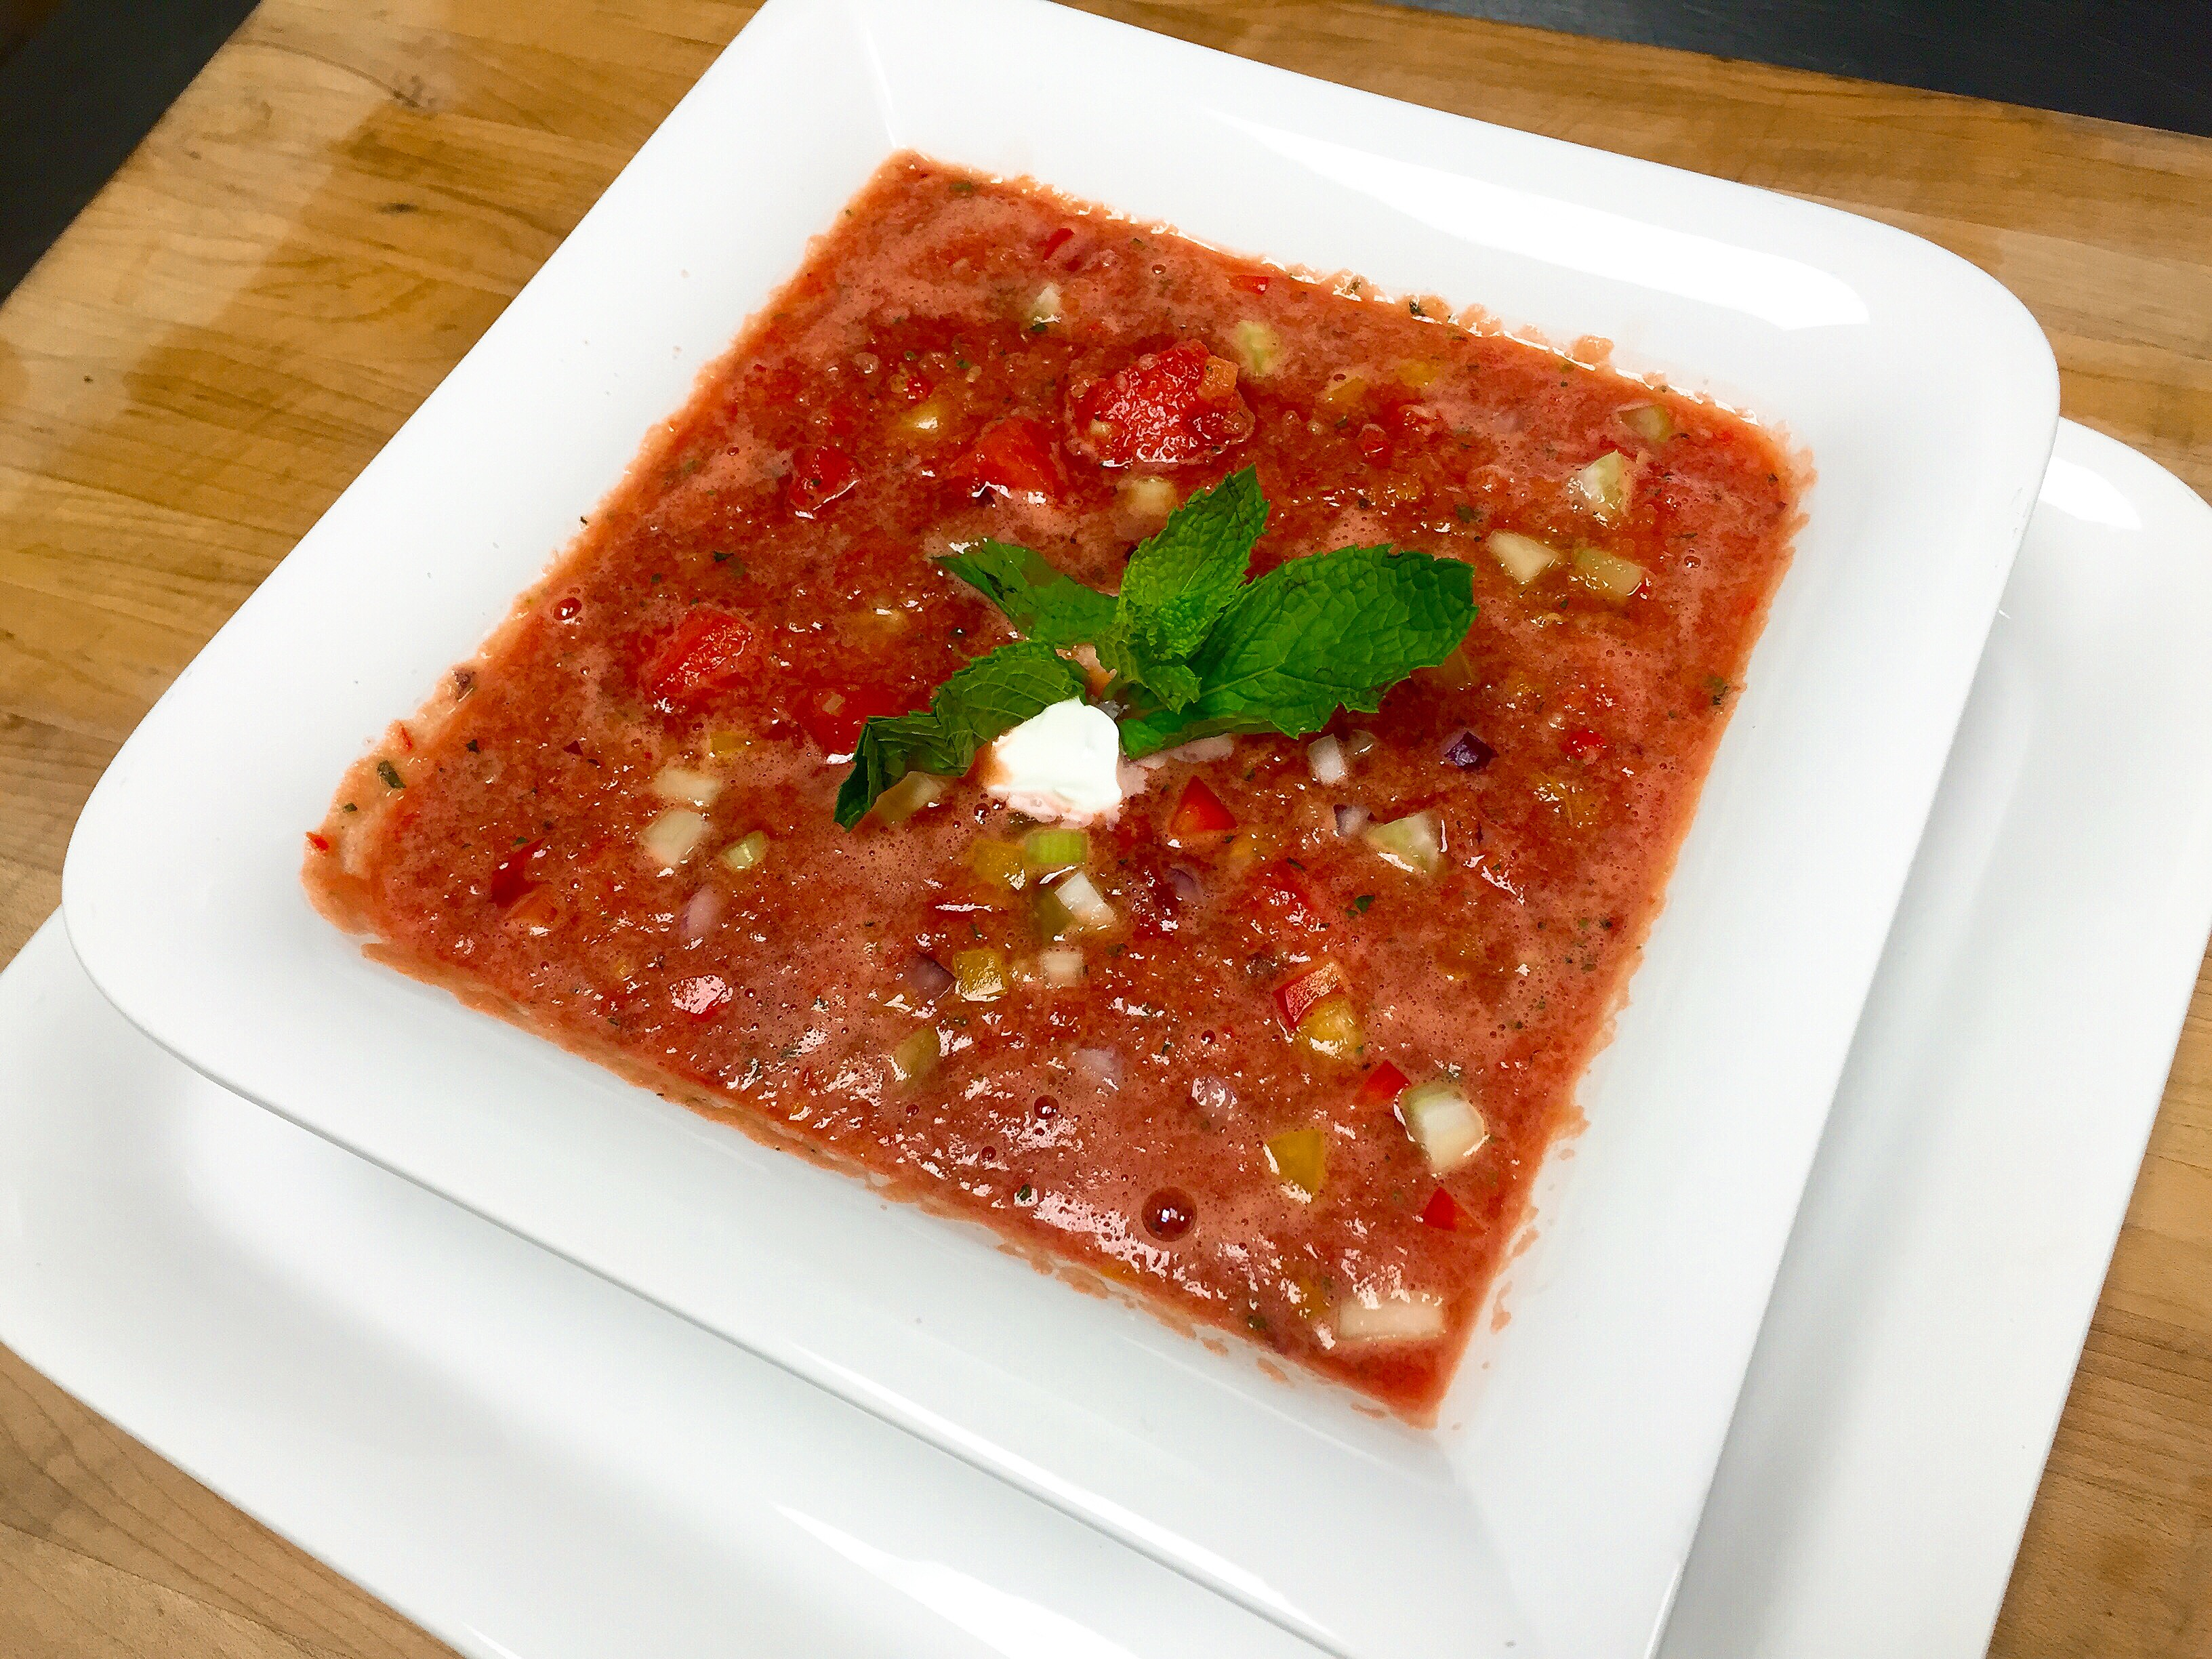 Get the Full Recipe for the Gazpacho here!